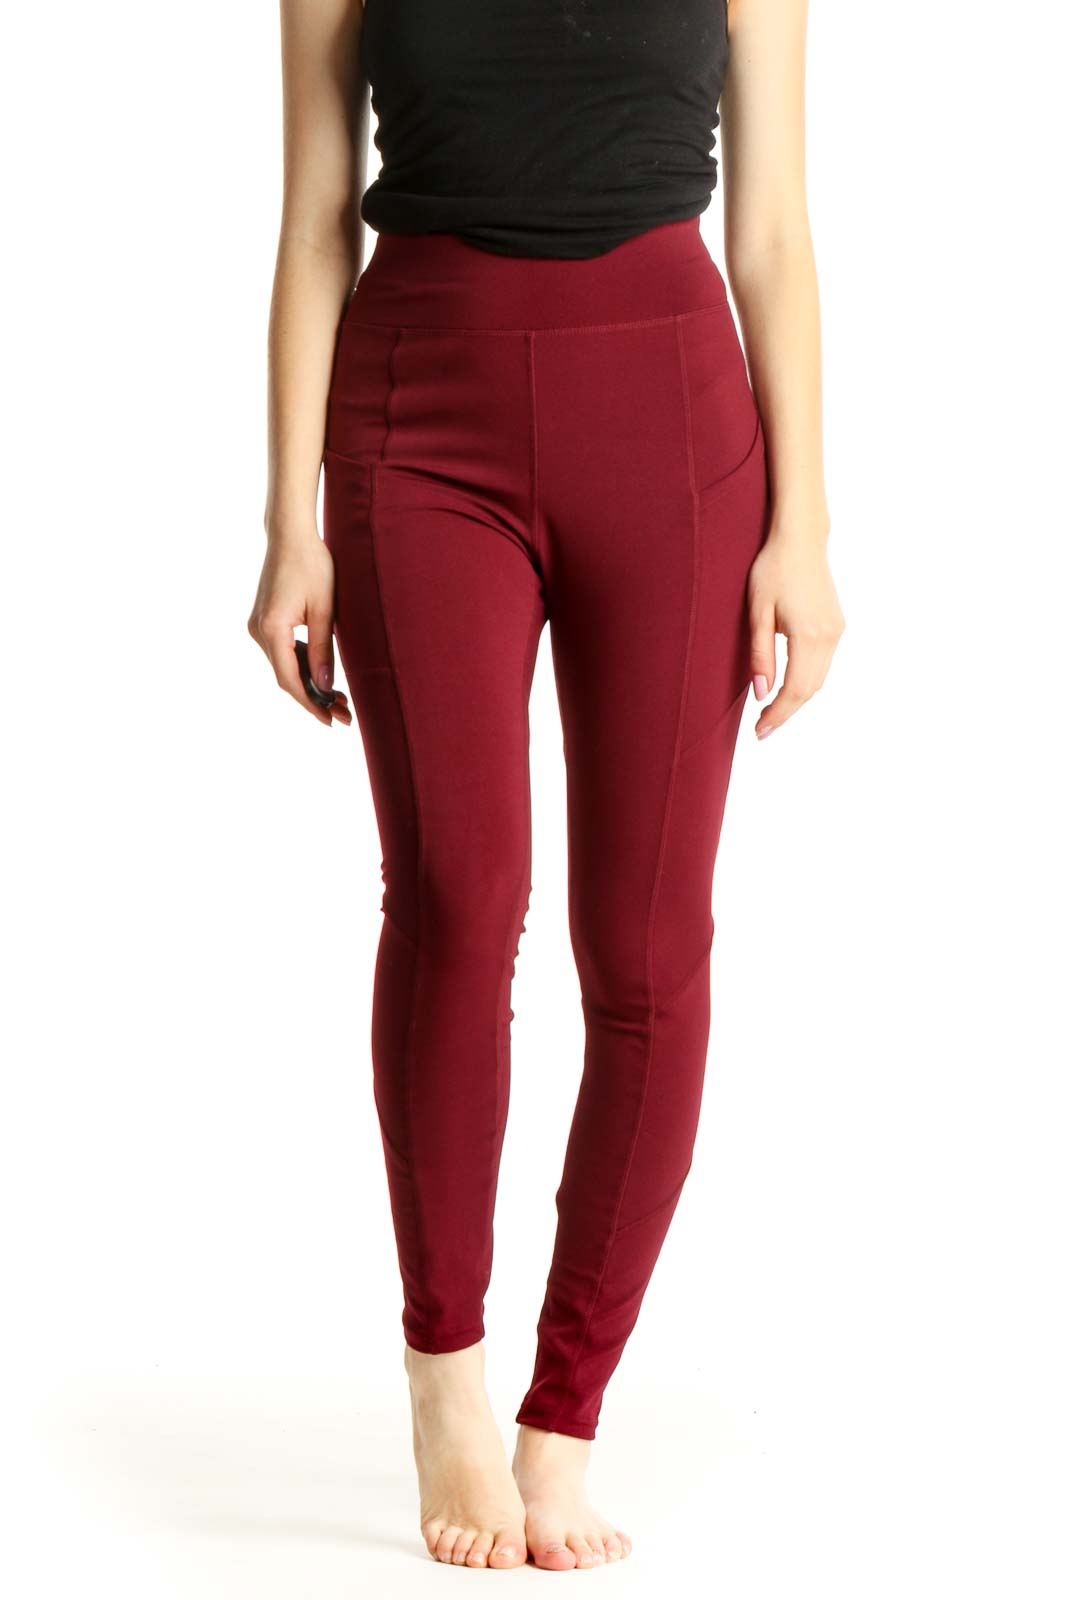 Red Solid Activewear Leggings Front